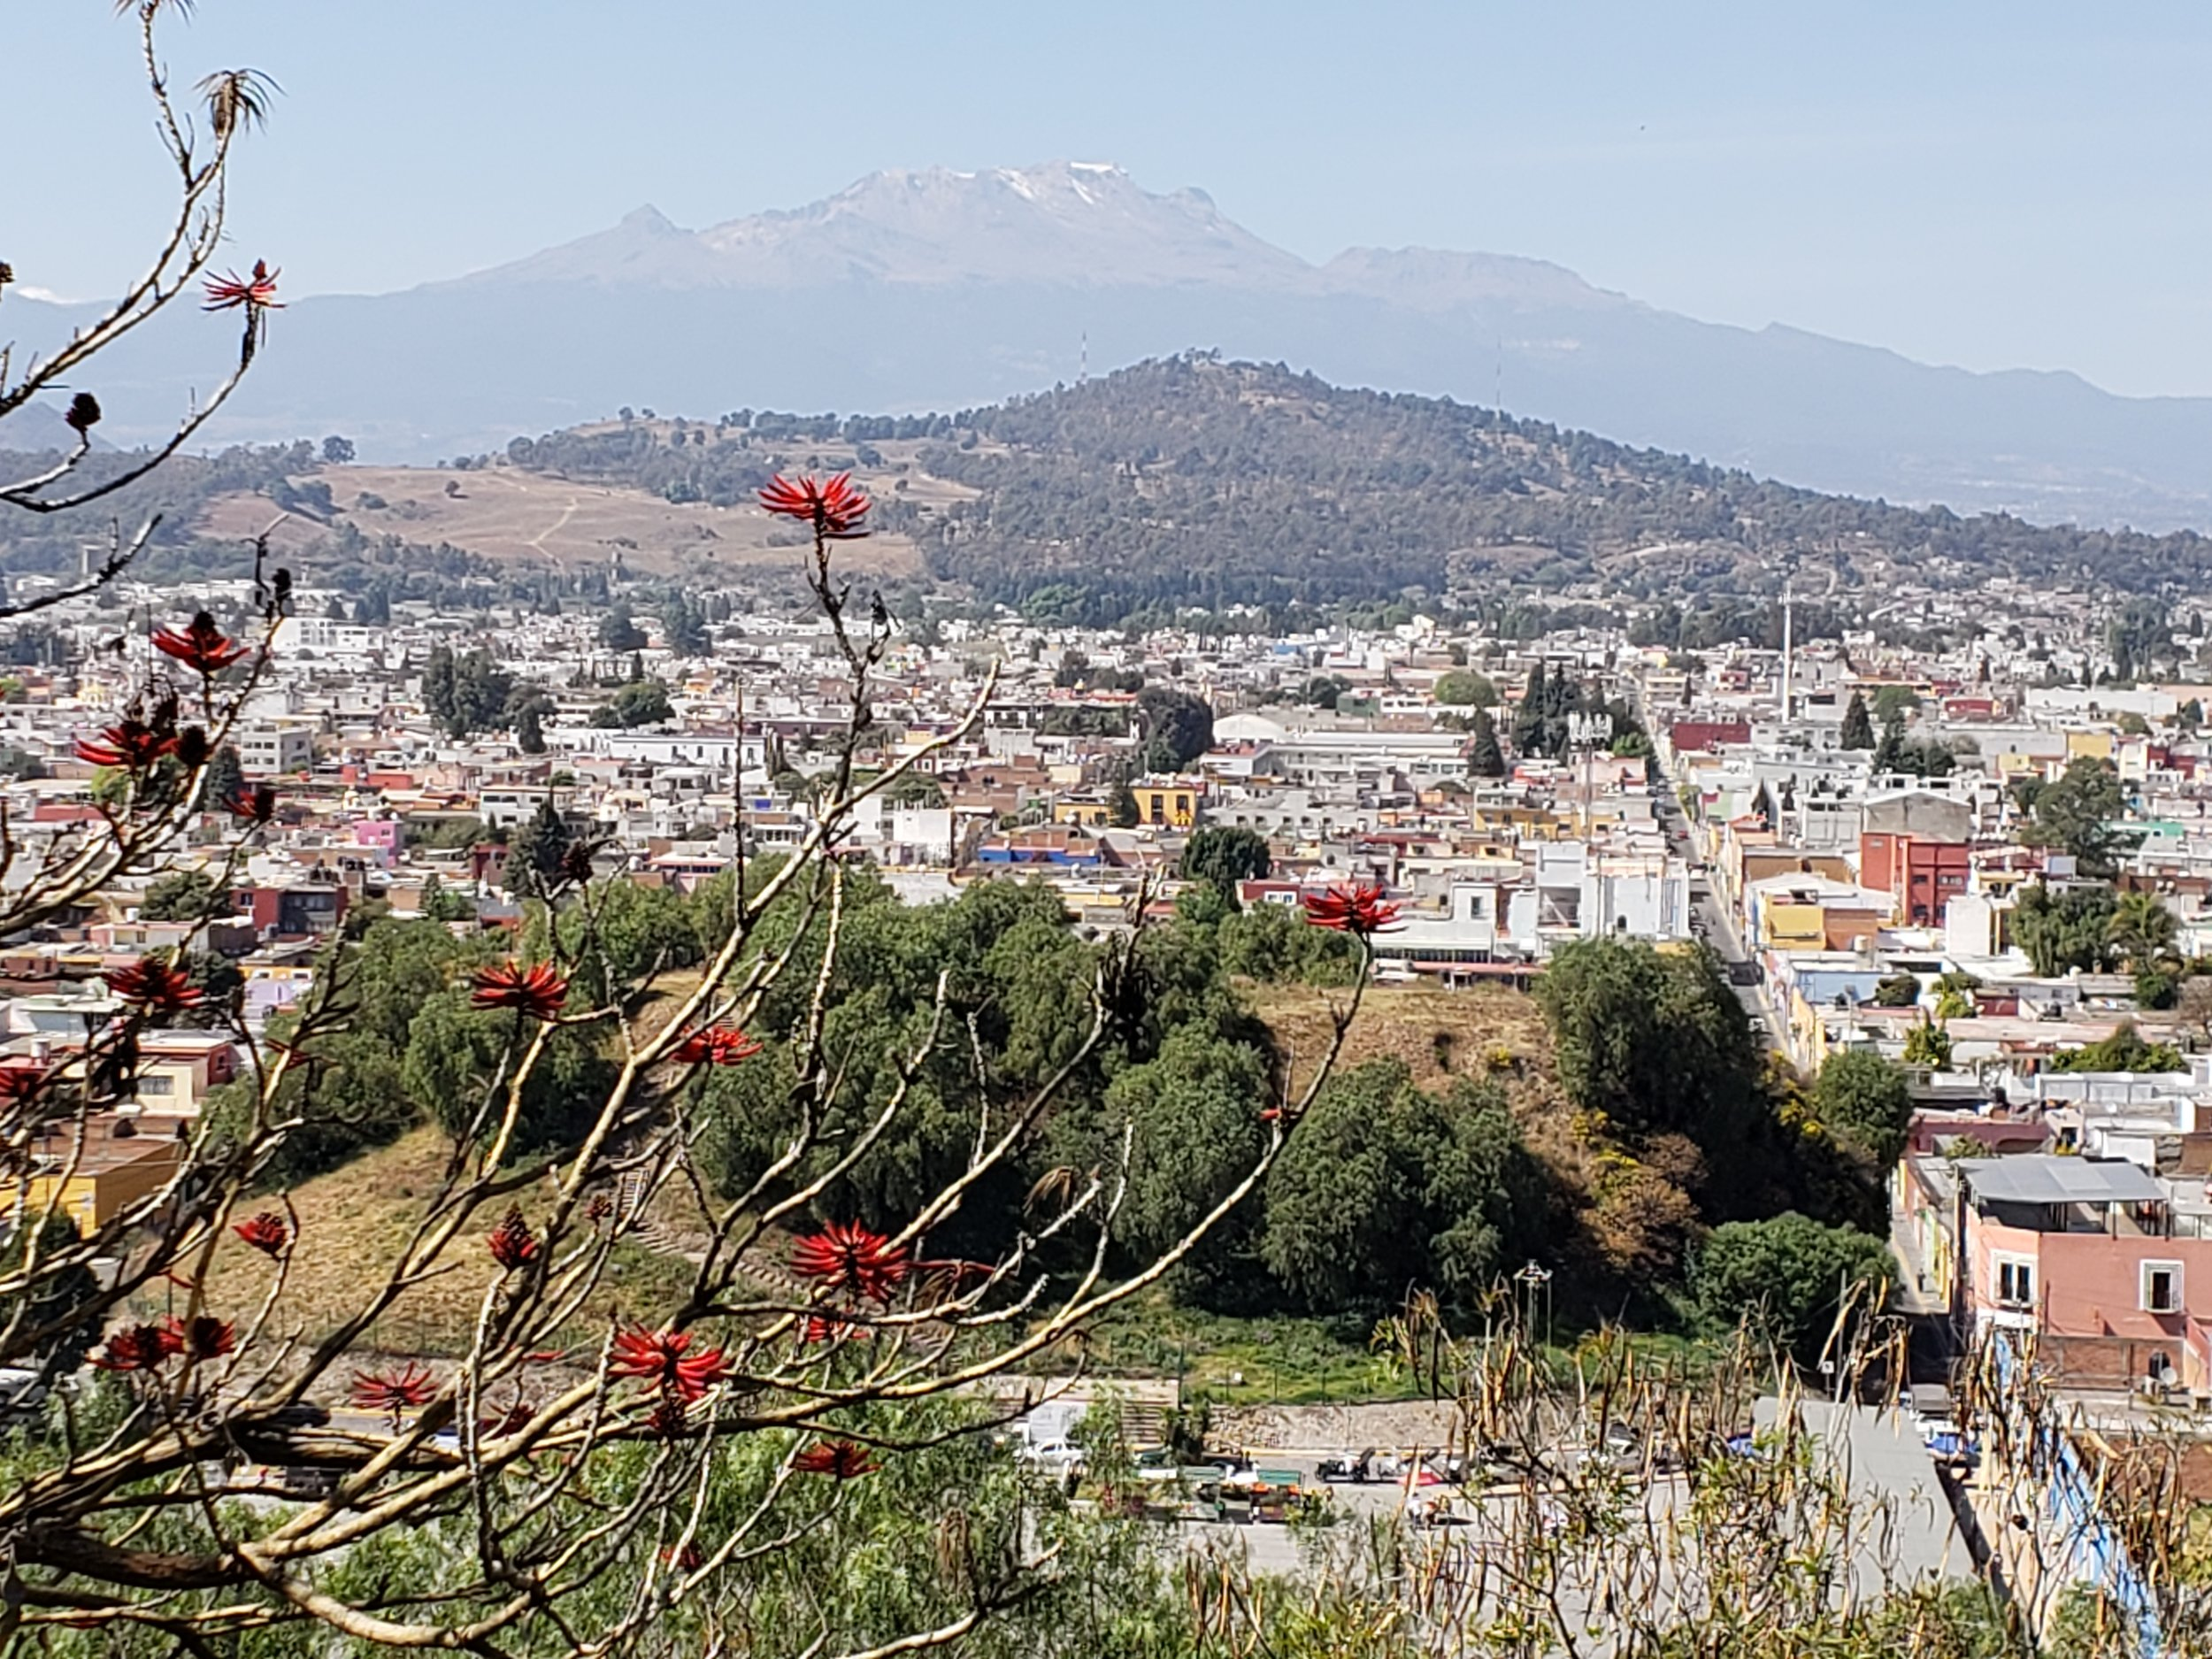 View of volcanos that separate Cholulu from Mexico City